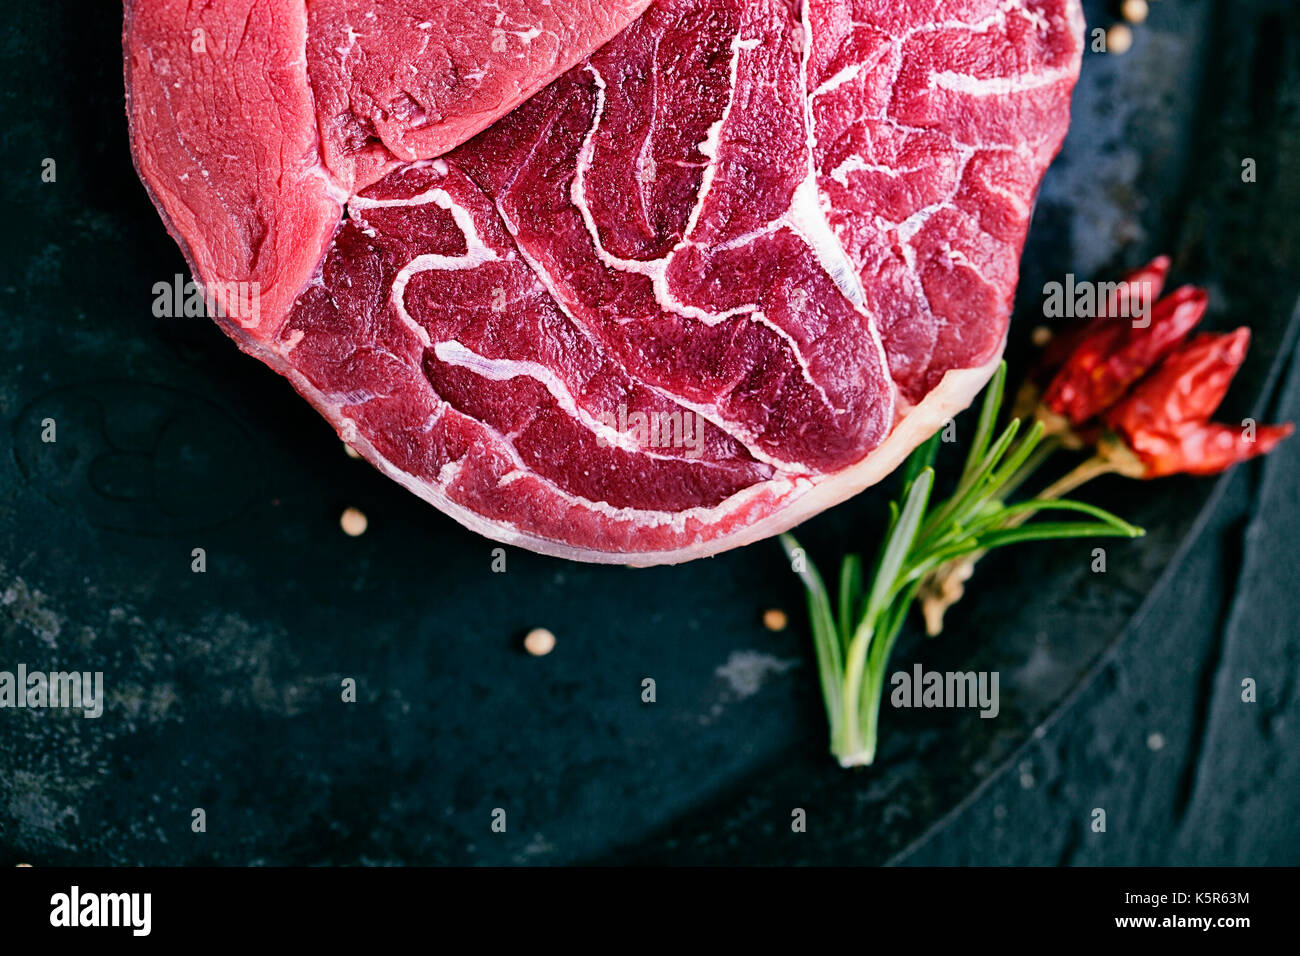 Meat. Raw meat. Beef steak on  black with herbs - Stock Image